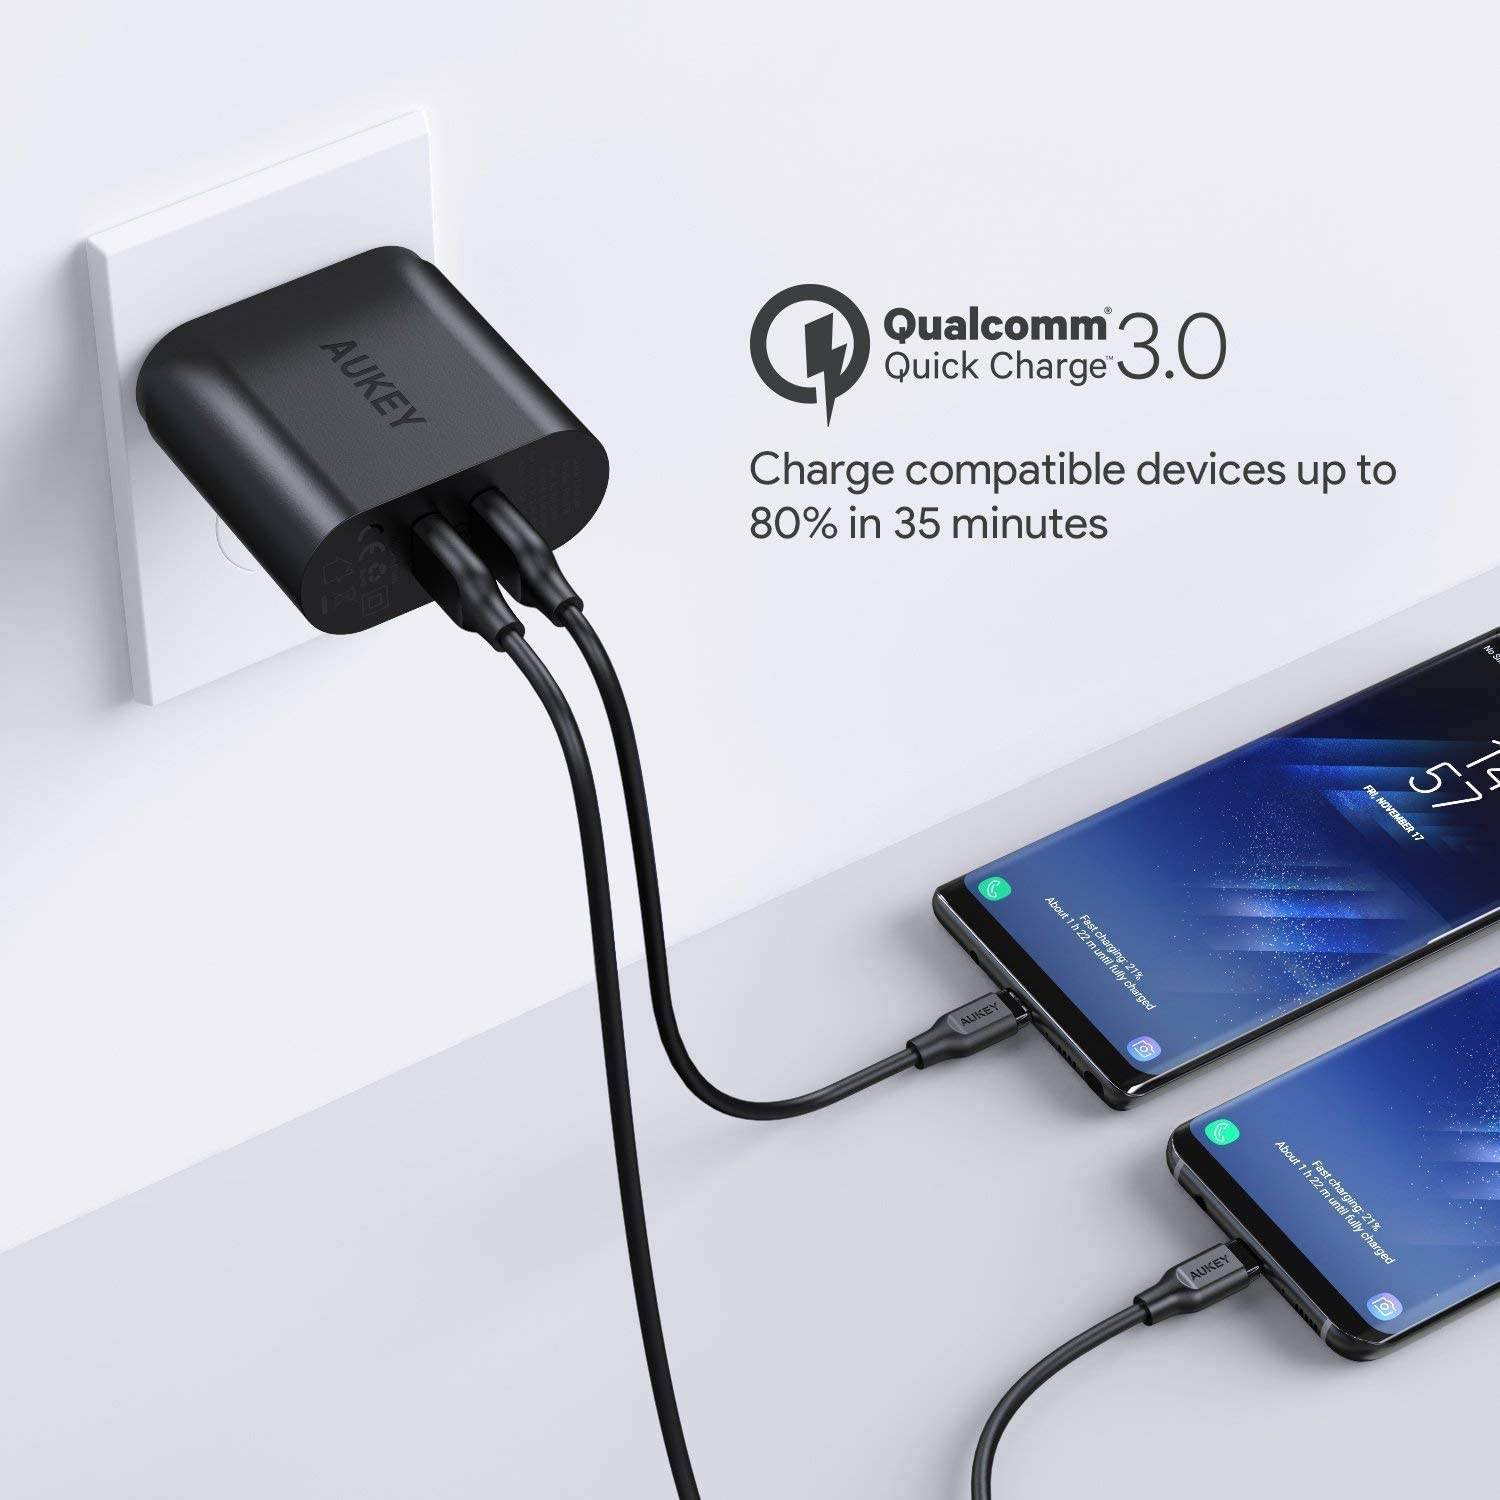 Quick Charge 3.0, AUKEY USB Wall Charger & Dual Ports, Compatible with Samsung Galaxy S9 / S8 / Note8, LG G6 / V30, HTC 10, iPhone 11 Pro/Max/11, and ...